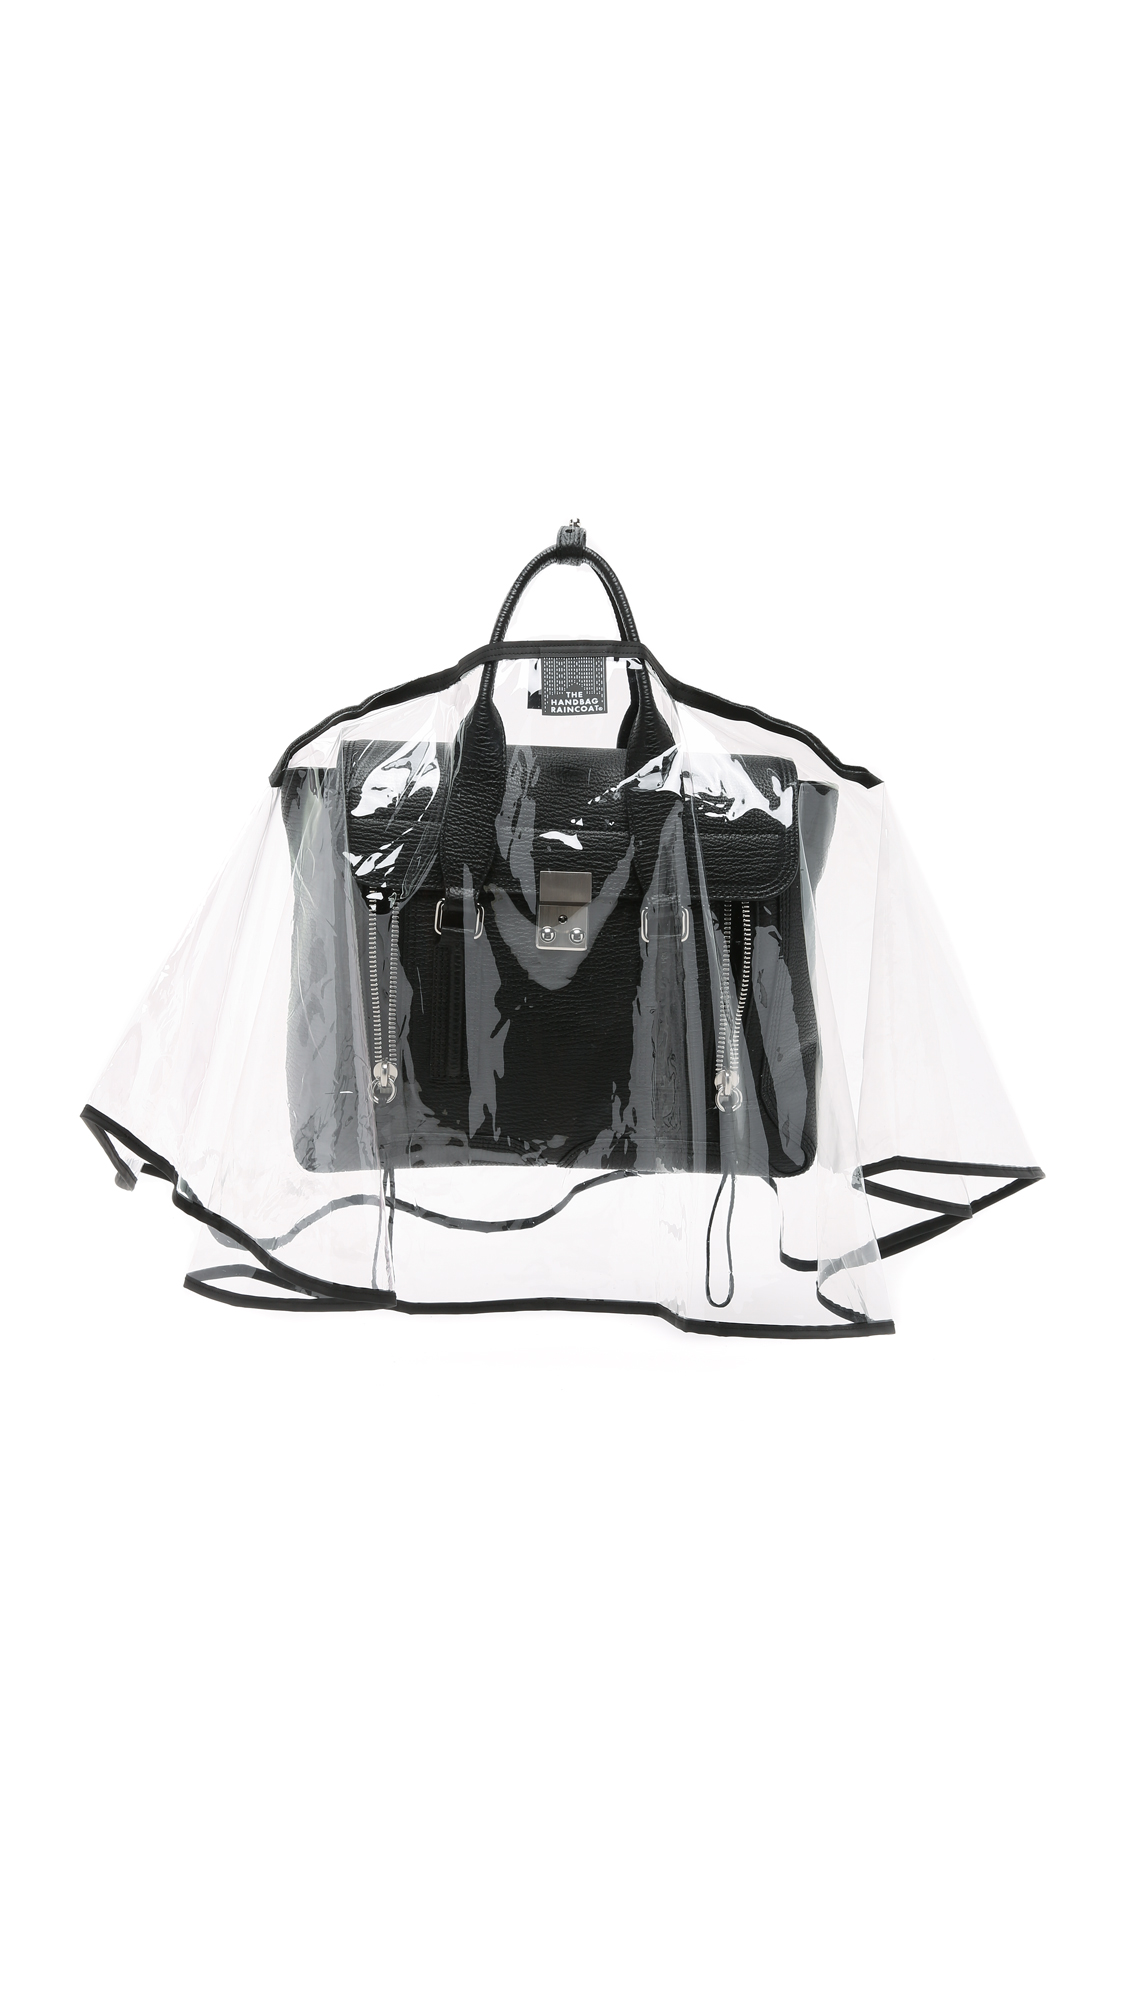 The Handbag Raincoat Large City Slicker Handbag Raincoat - Clear/Black